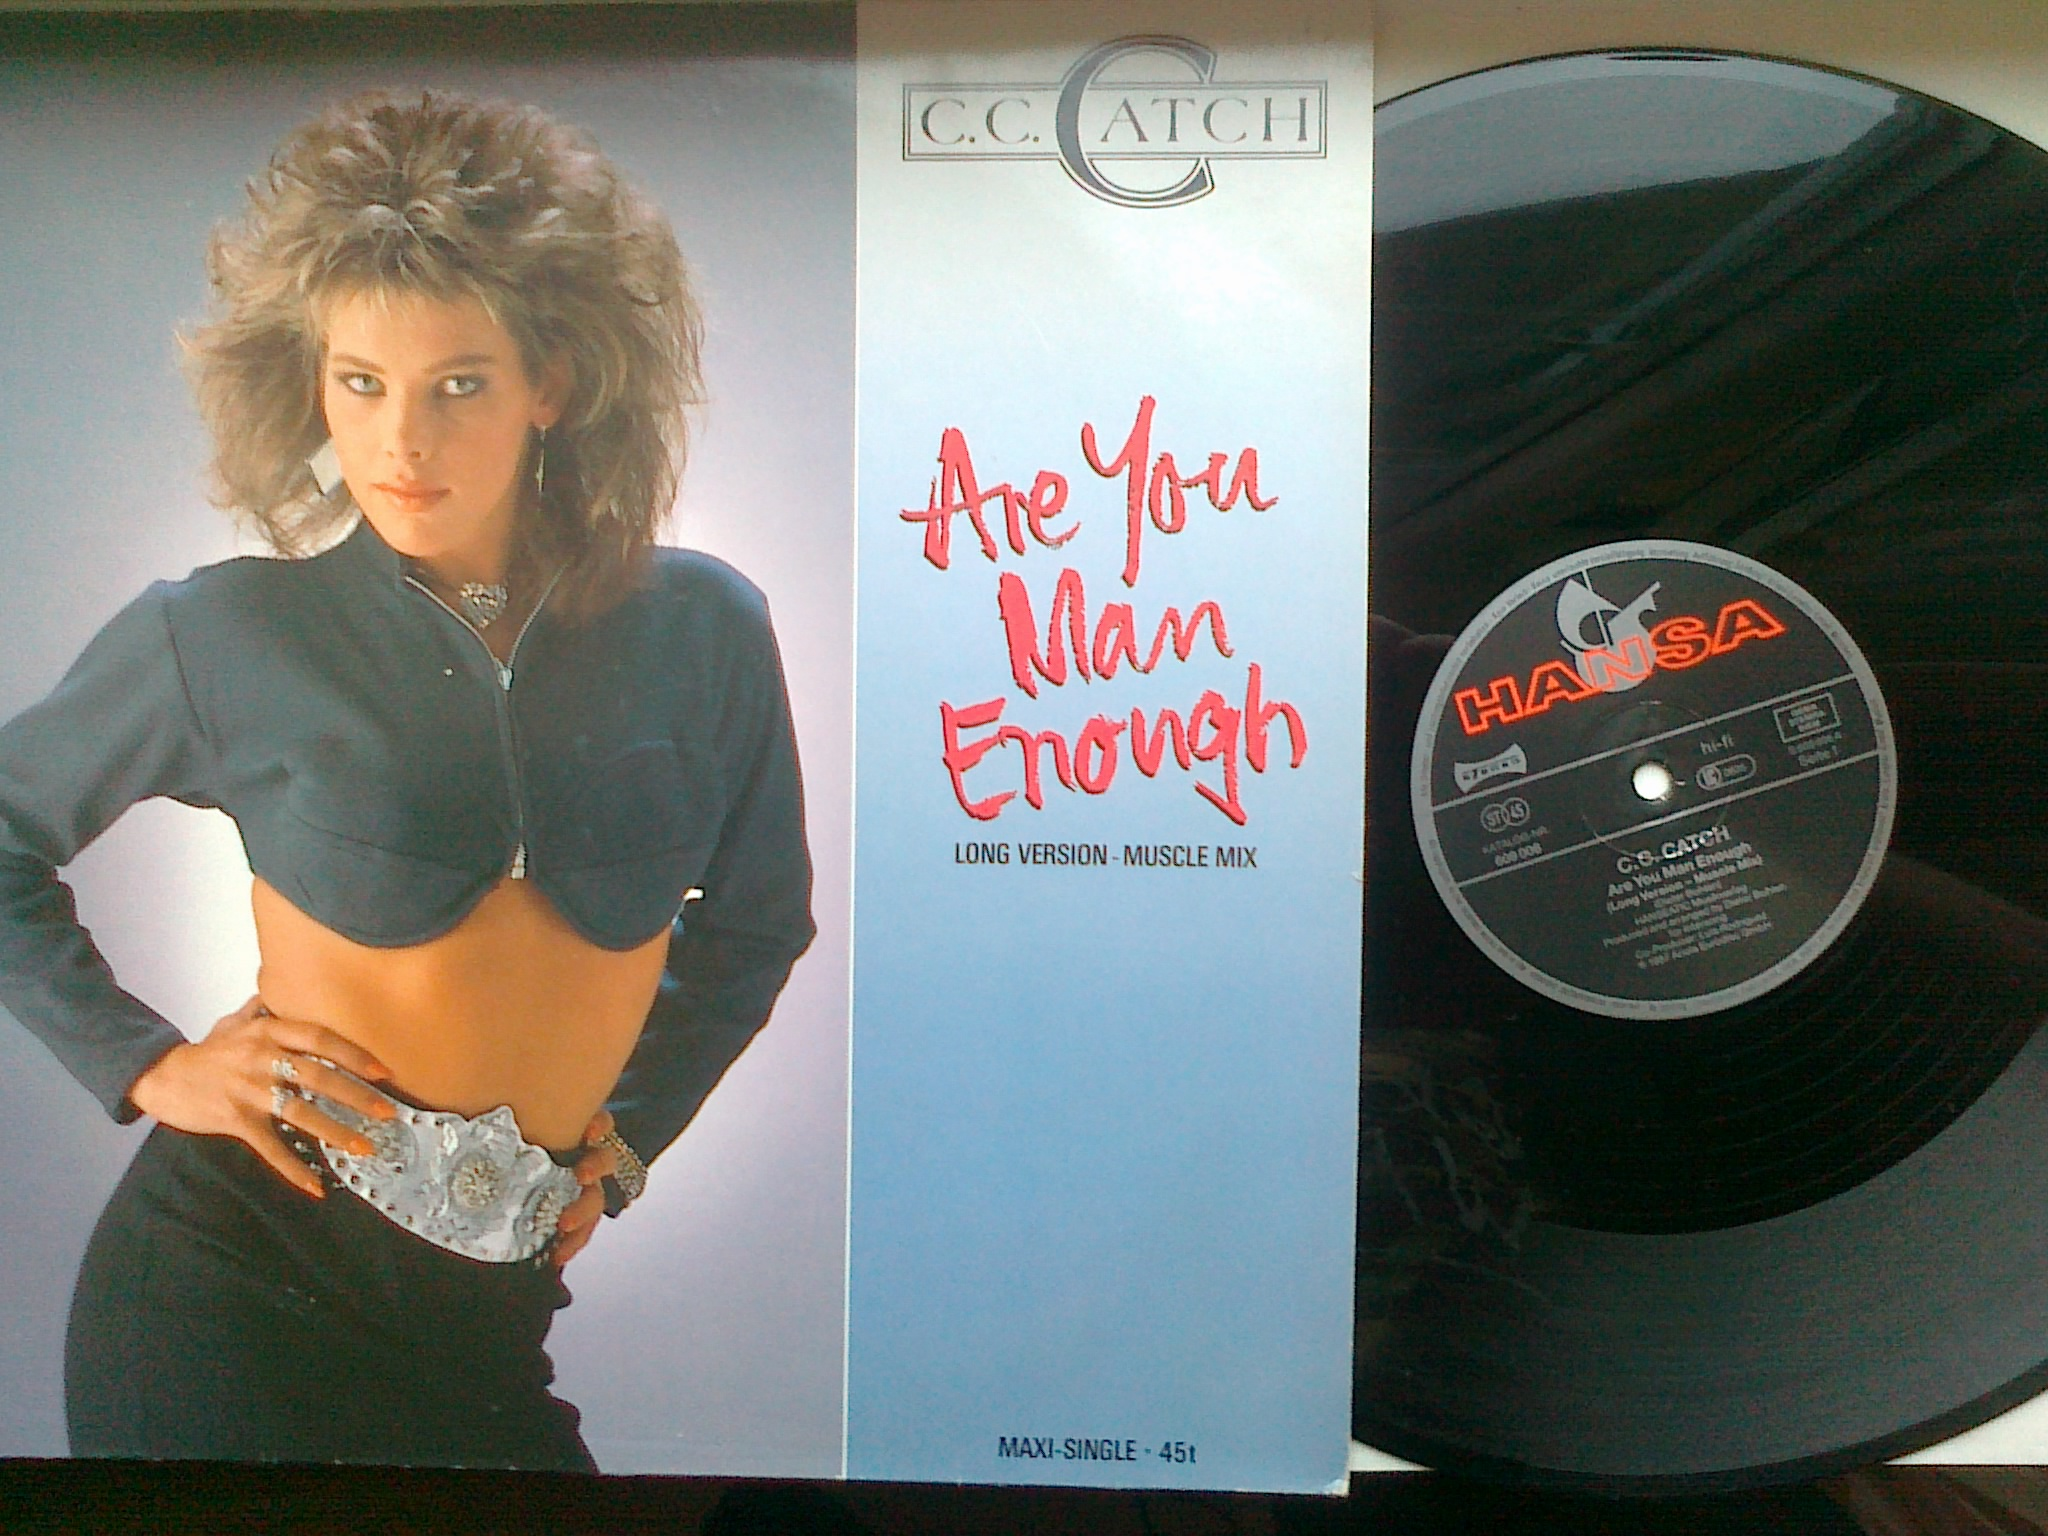 C. C. Catch - Are you man enough